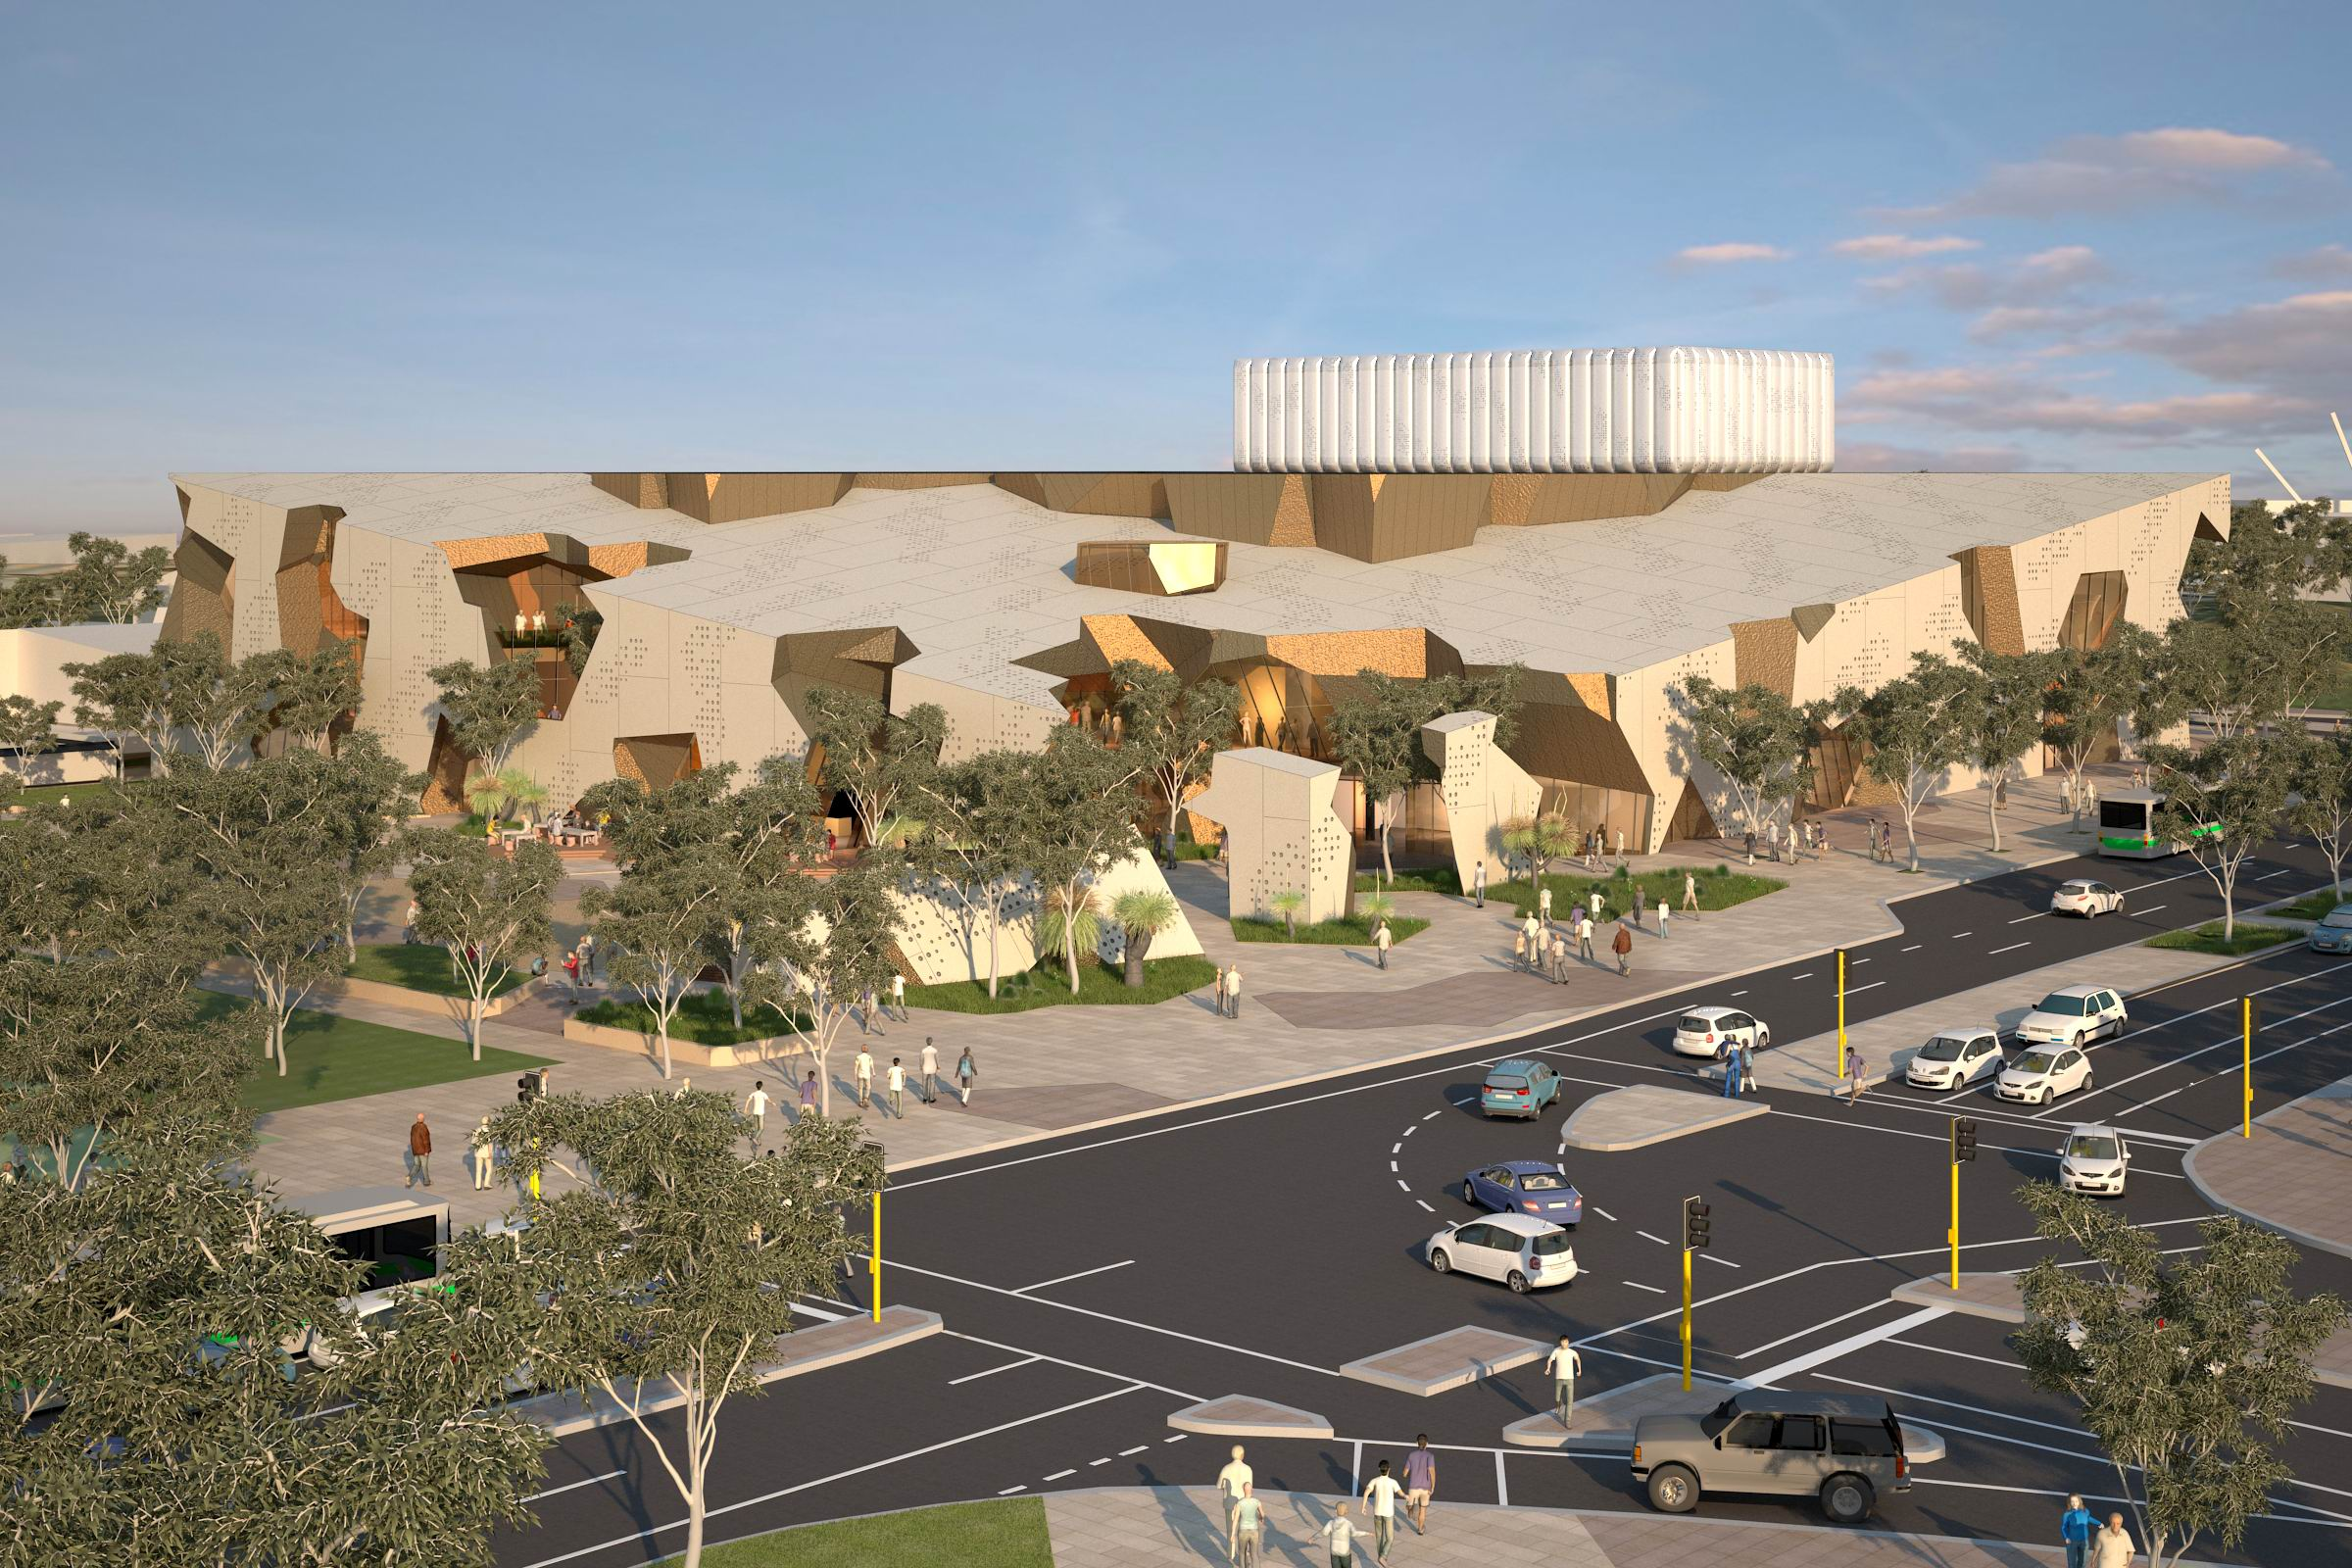 An artist's impression of the proposed Joondalup